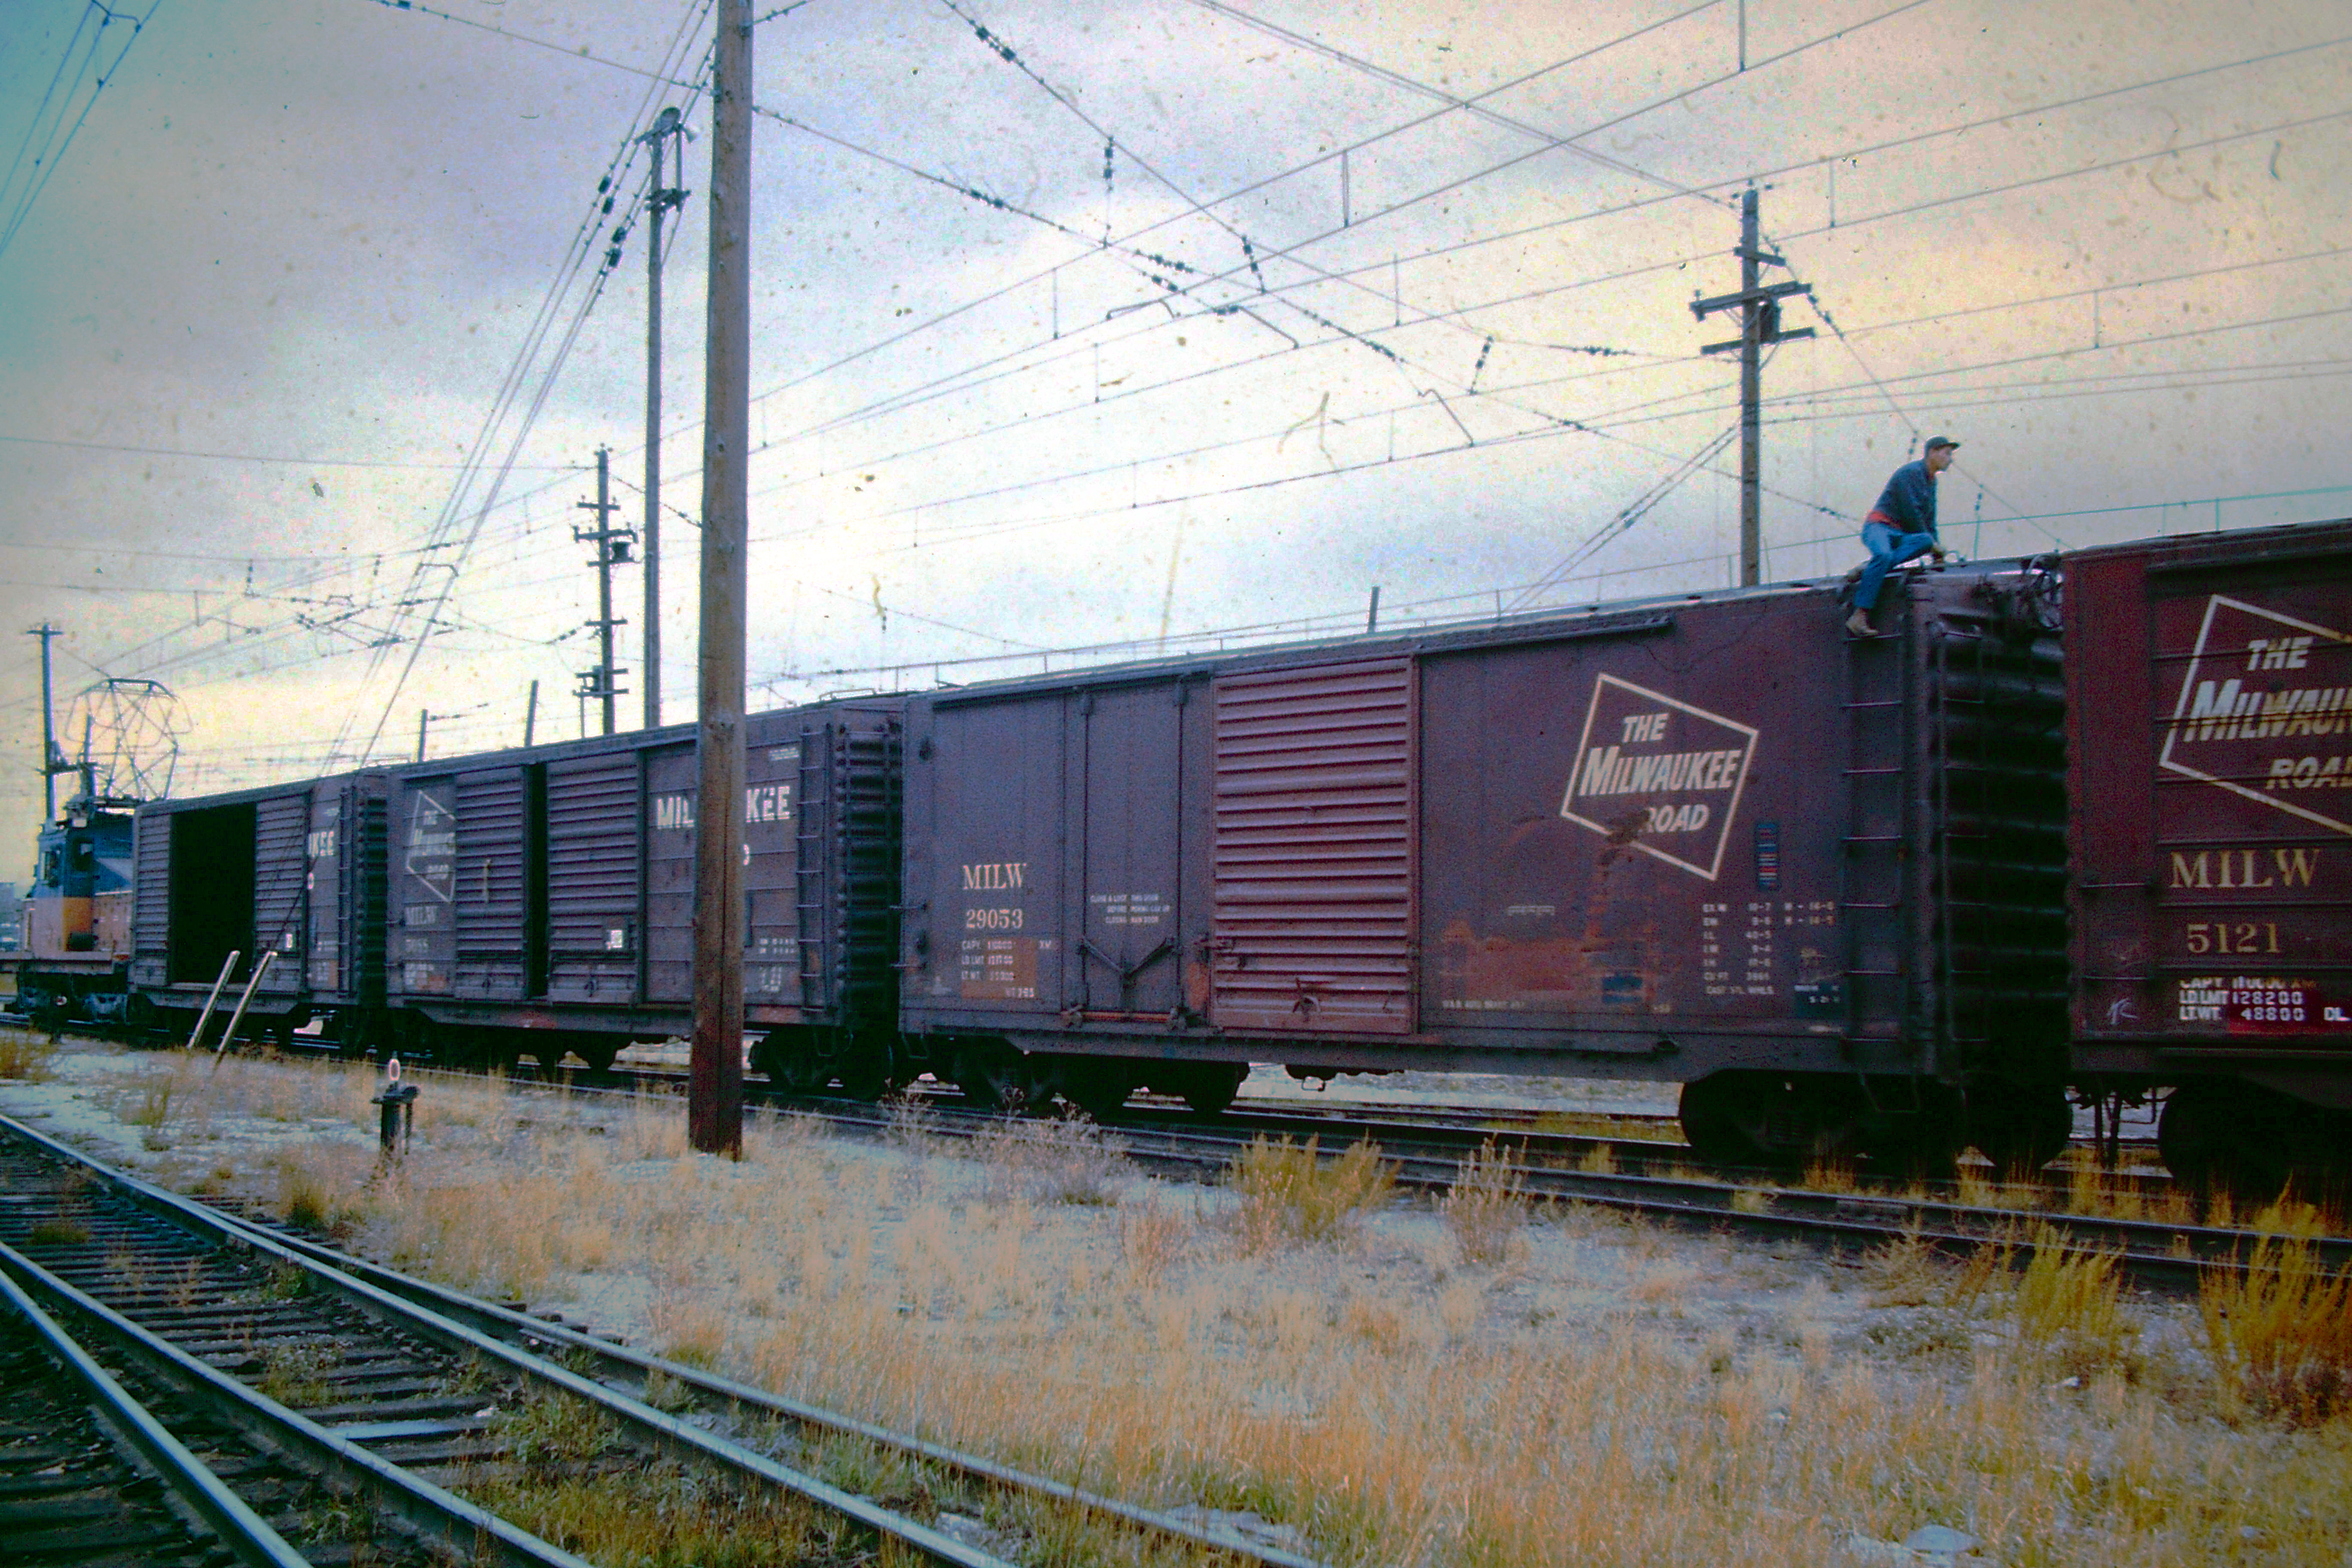 Electric train with boxcars and man on top of one working.